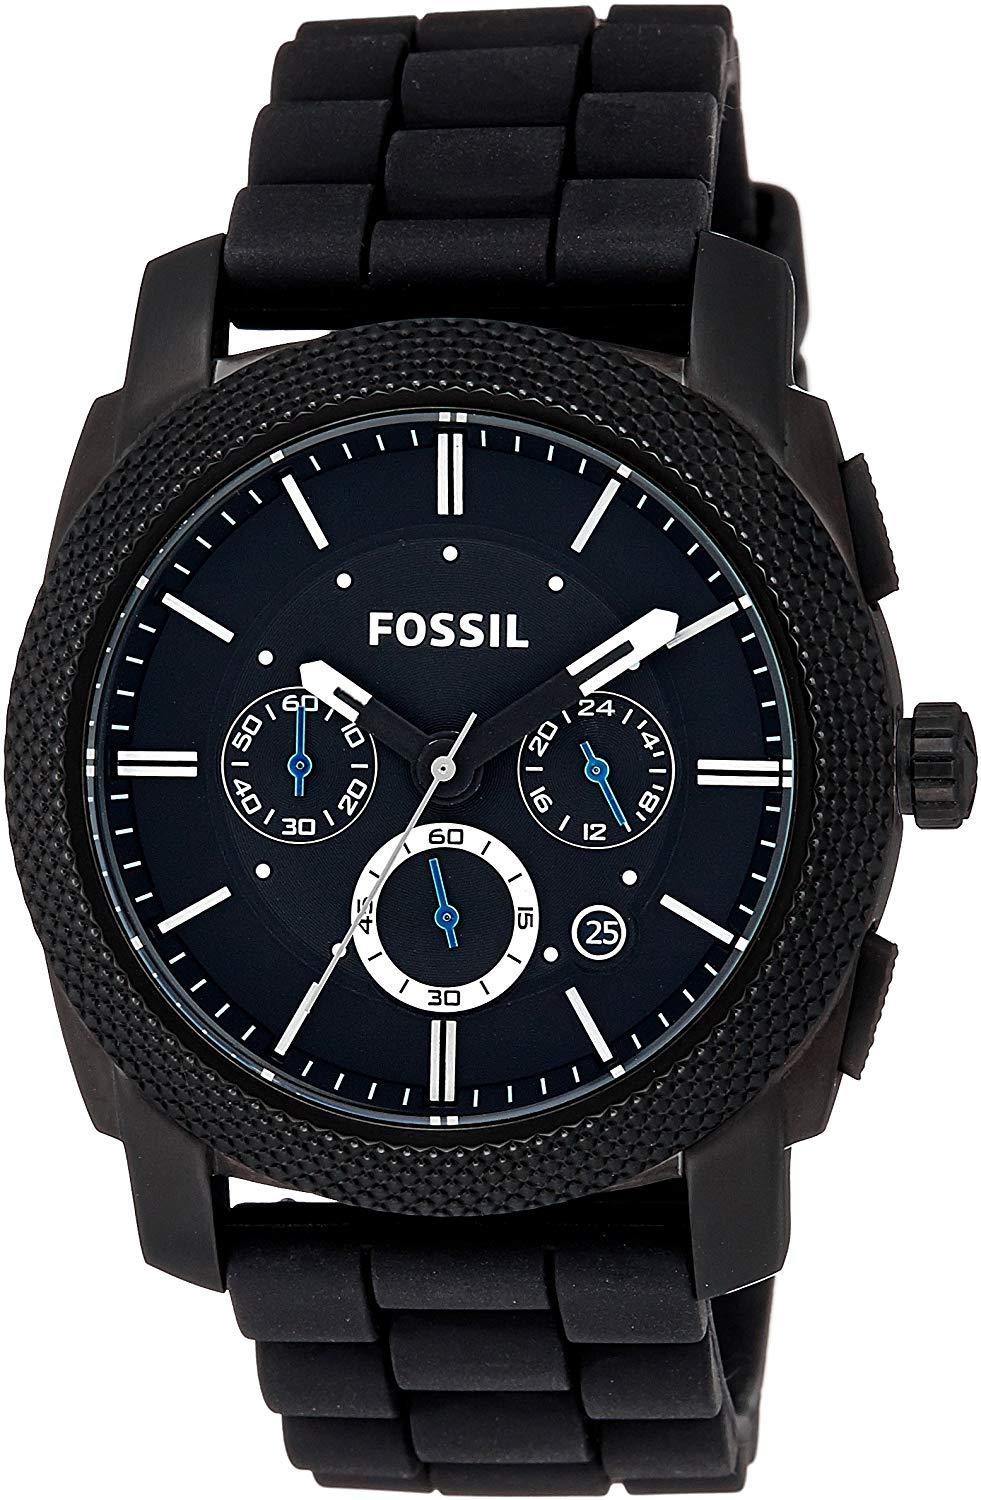 Fossil FS4487 Chronograph best Fossil Watch